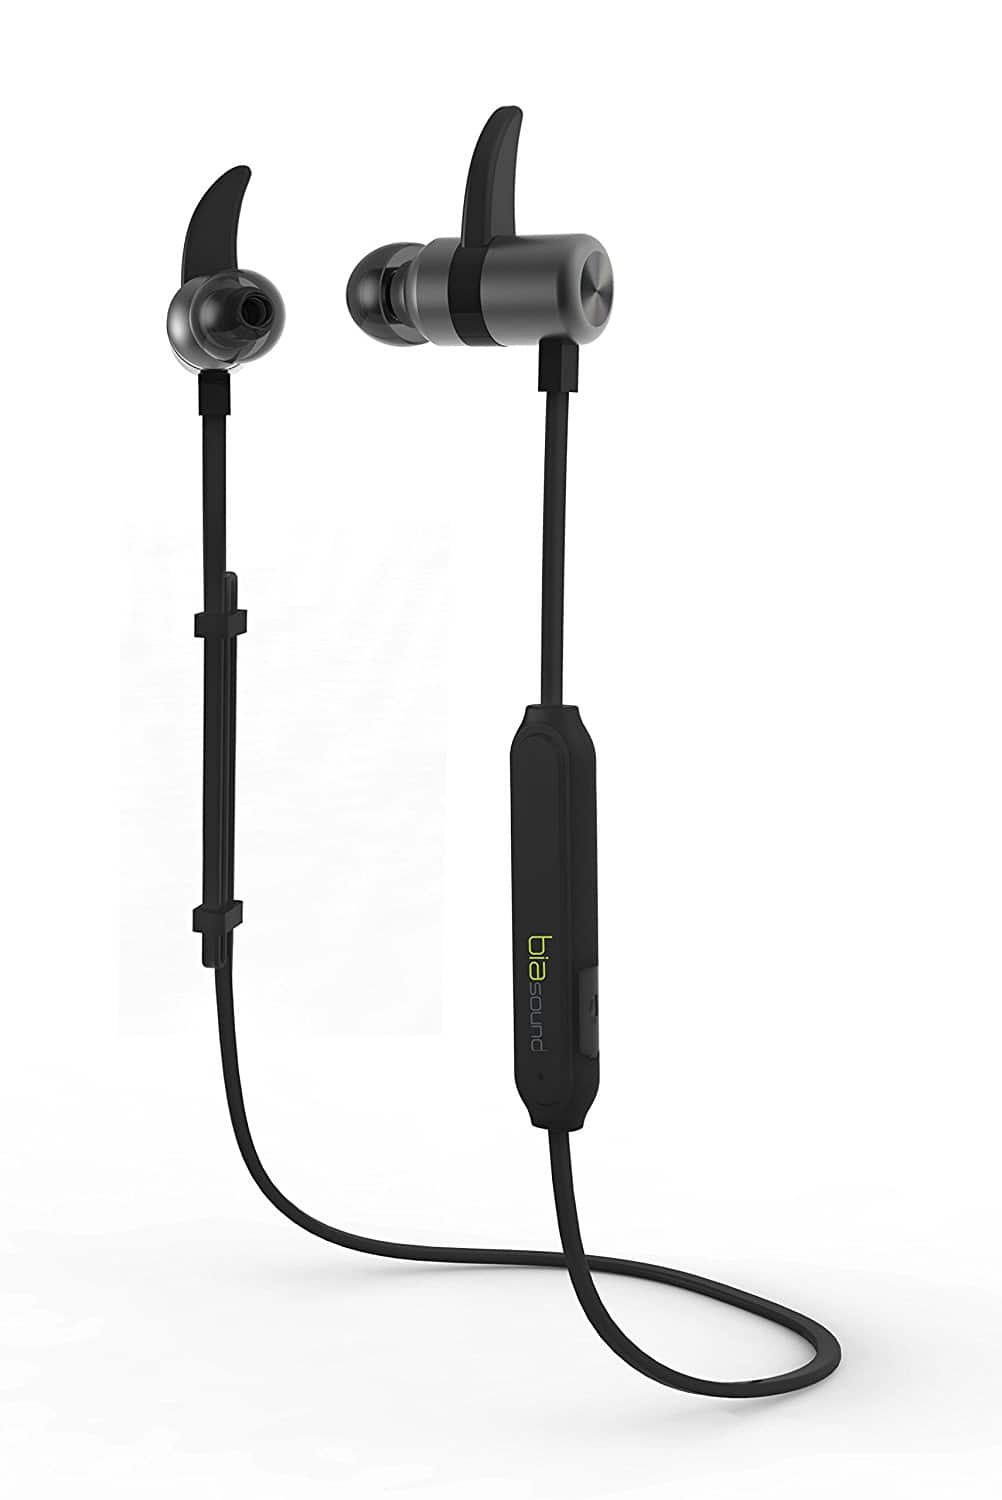 Biasound Bluetooth 4.1 Magnetic Wireless In-Ear Headphones with Built-In Mic for $7.99 AC + FSSS or FS w/ Prime @ Amazon.com